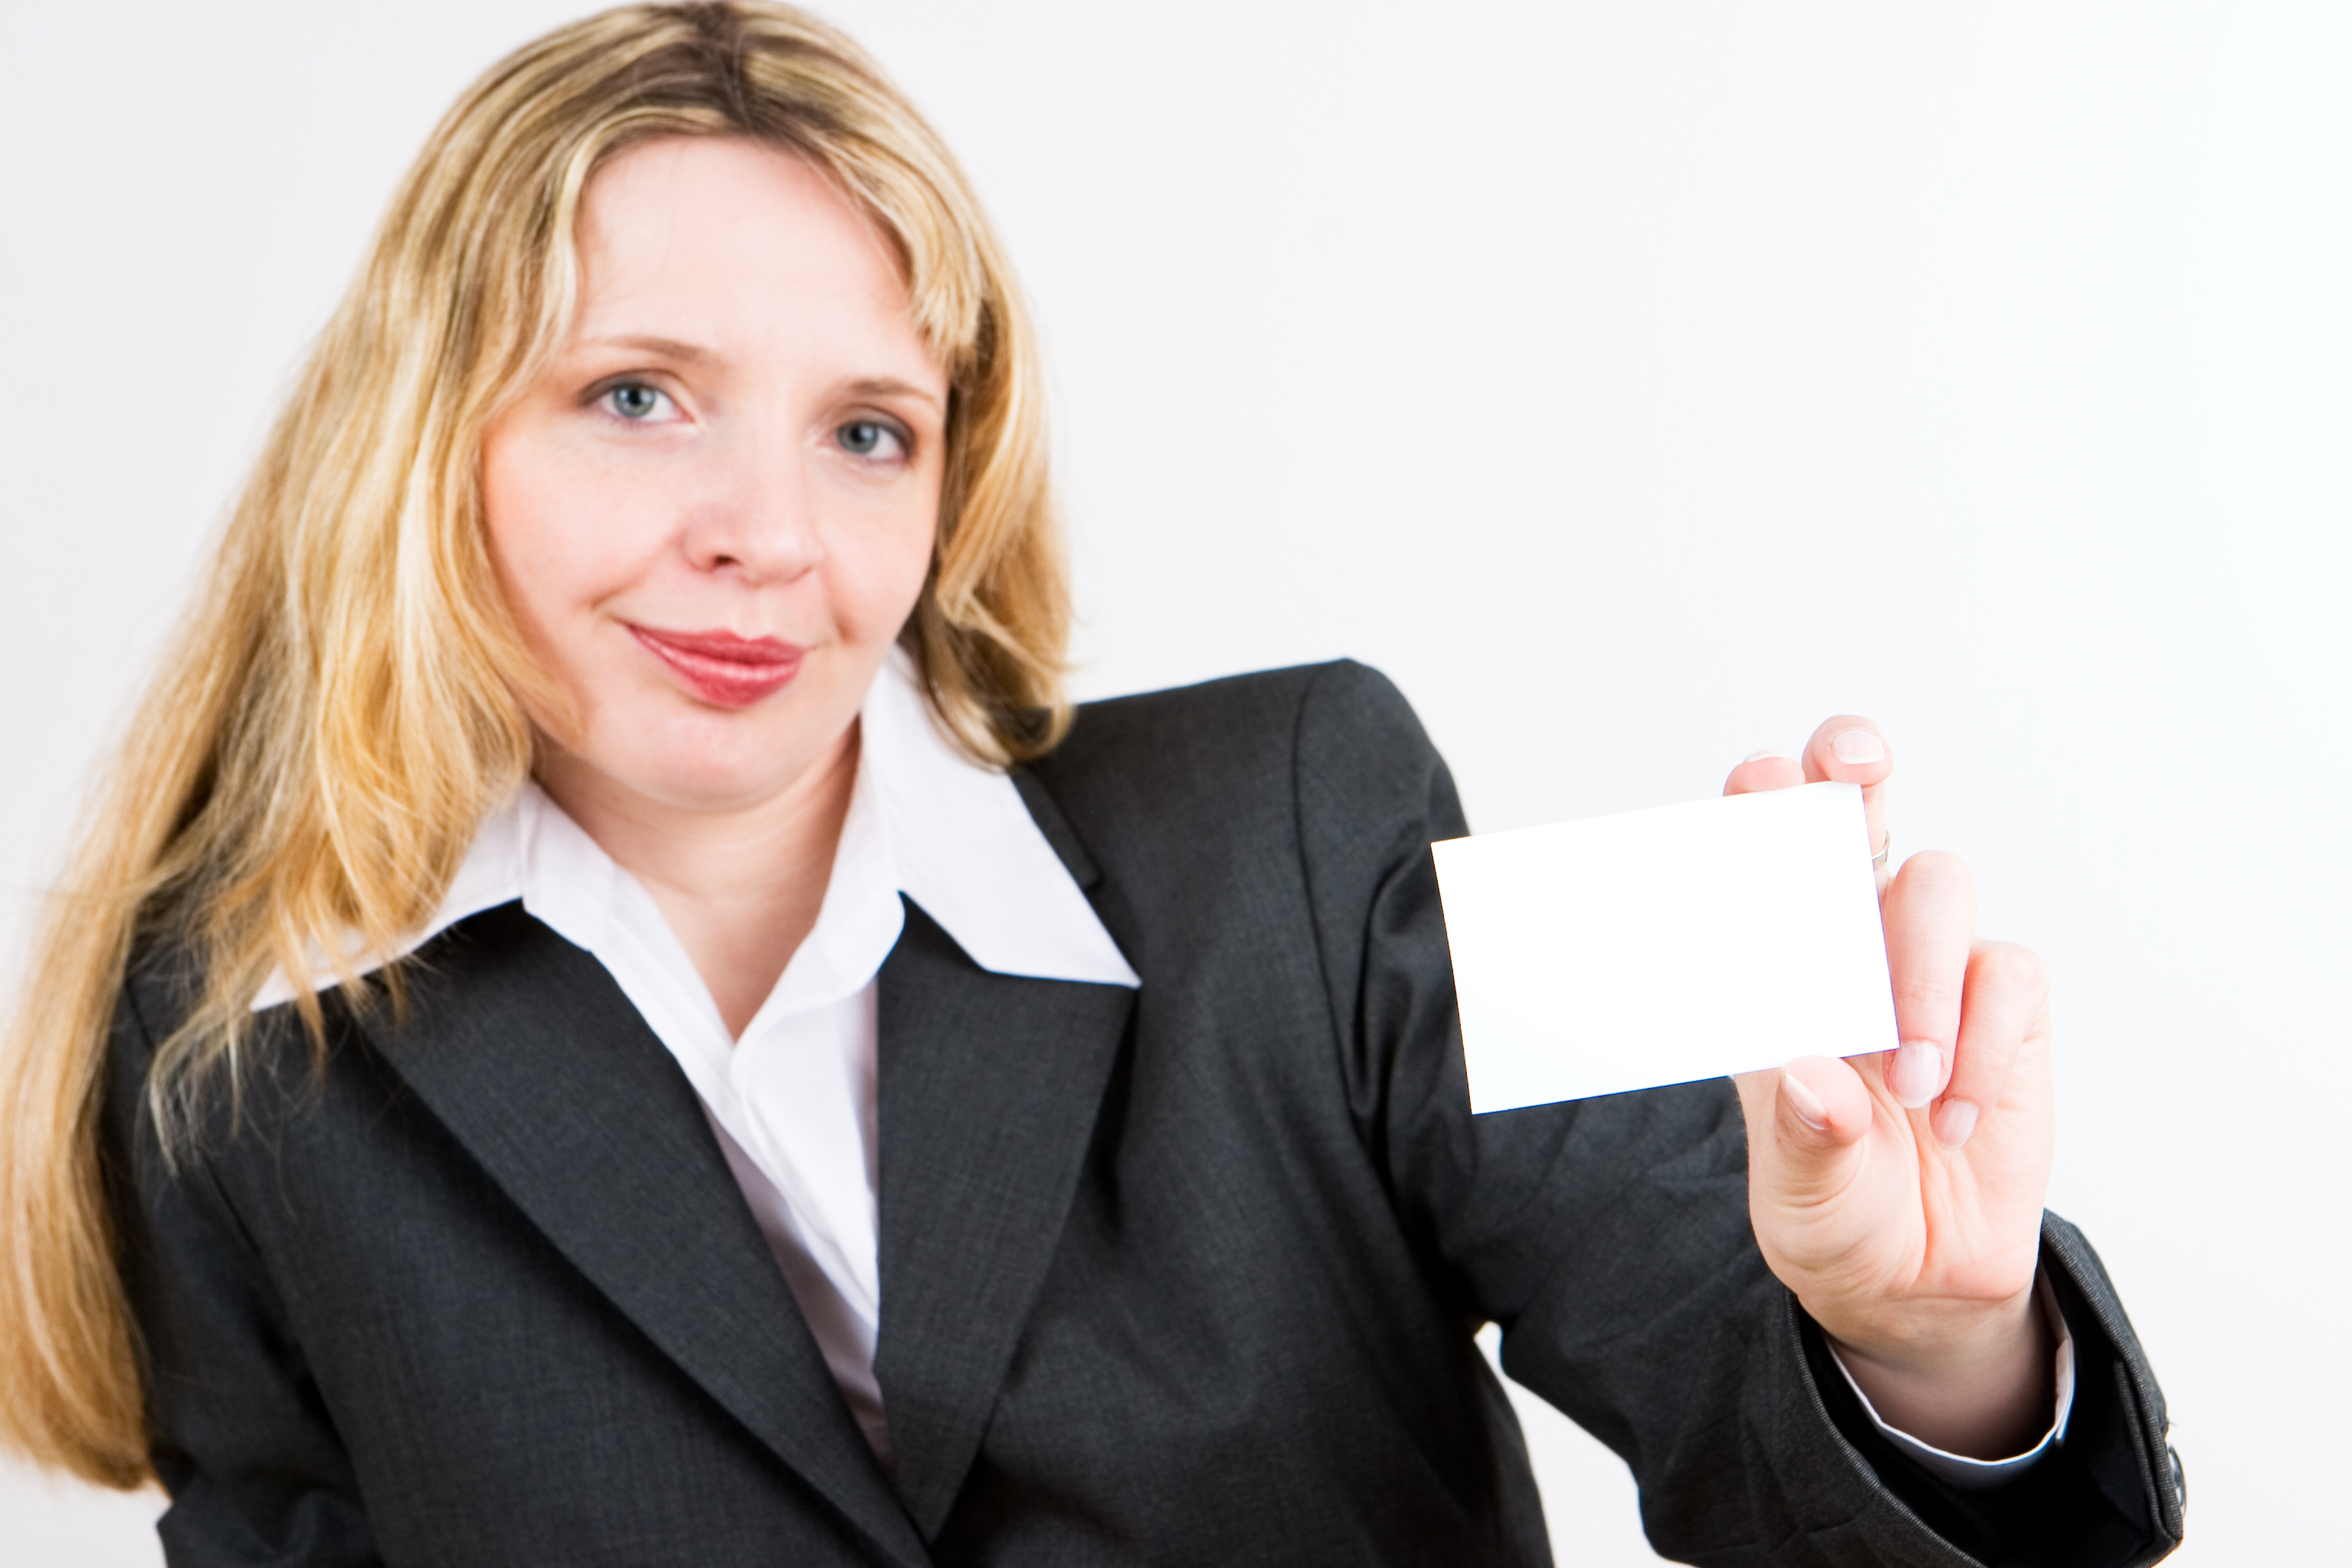 A blond business woman in a suit holding a blank business card